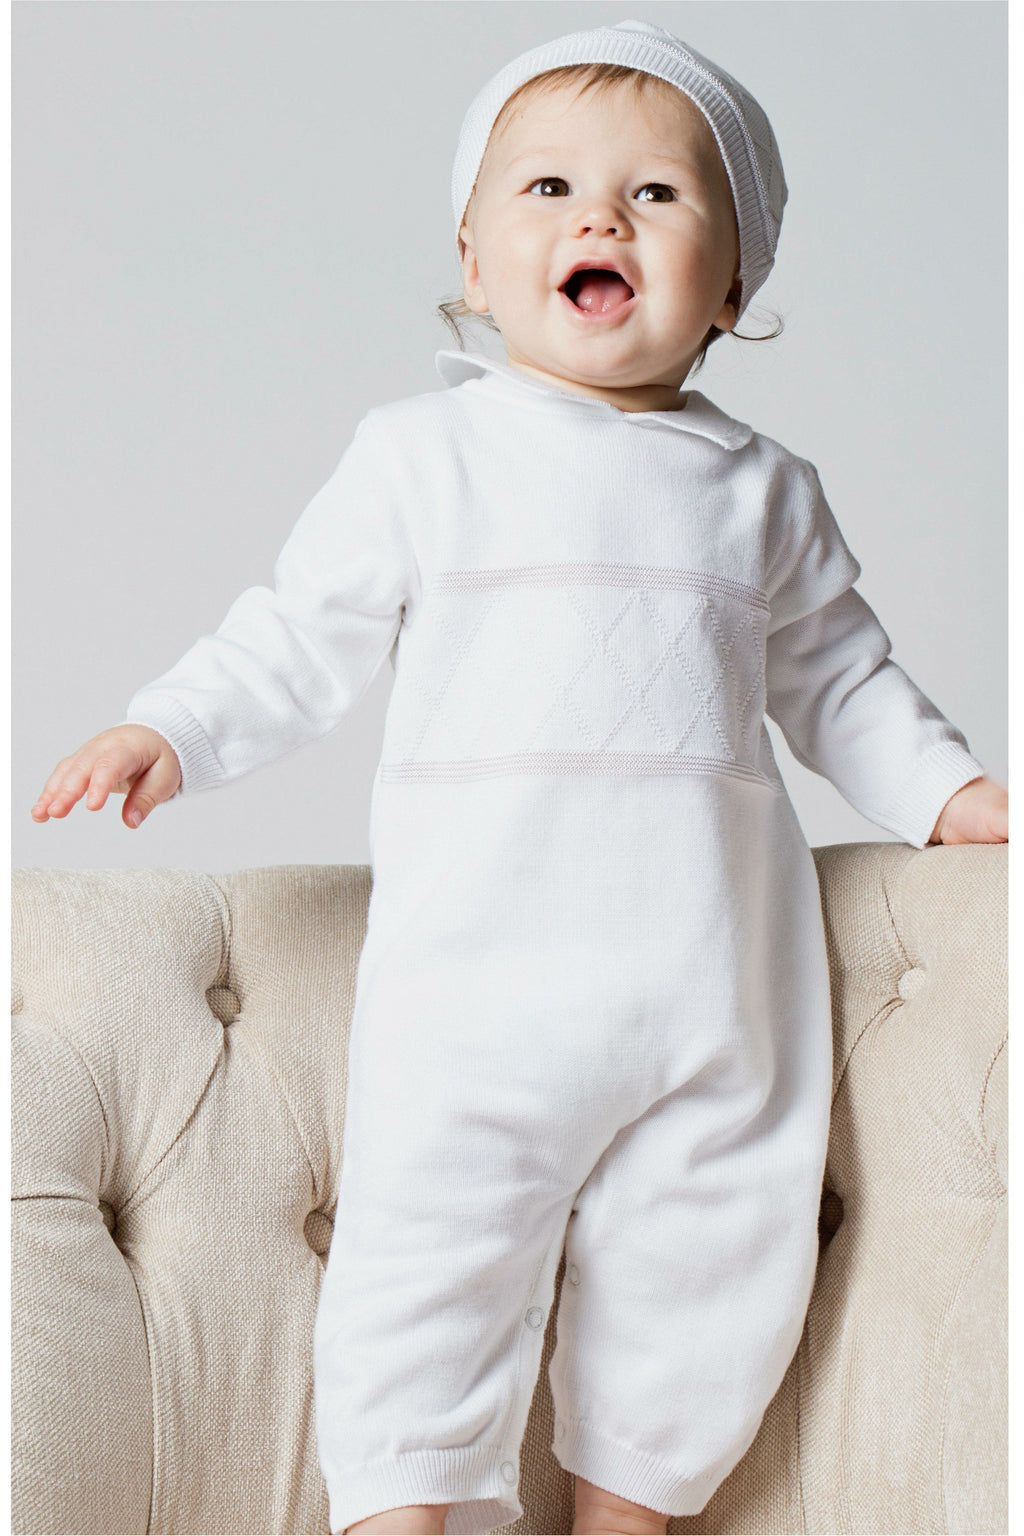 Baby Boys Christening Outfit - Coverall Diamond Stitching  with Hat